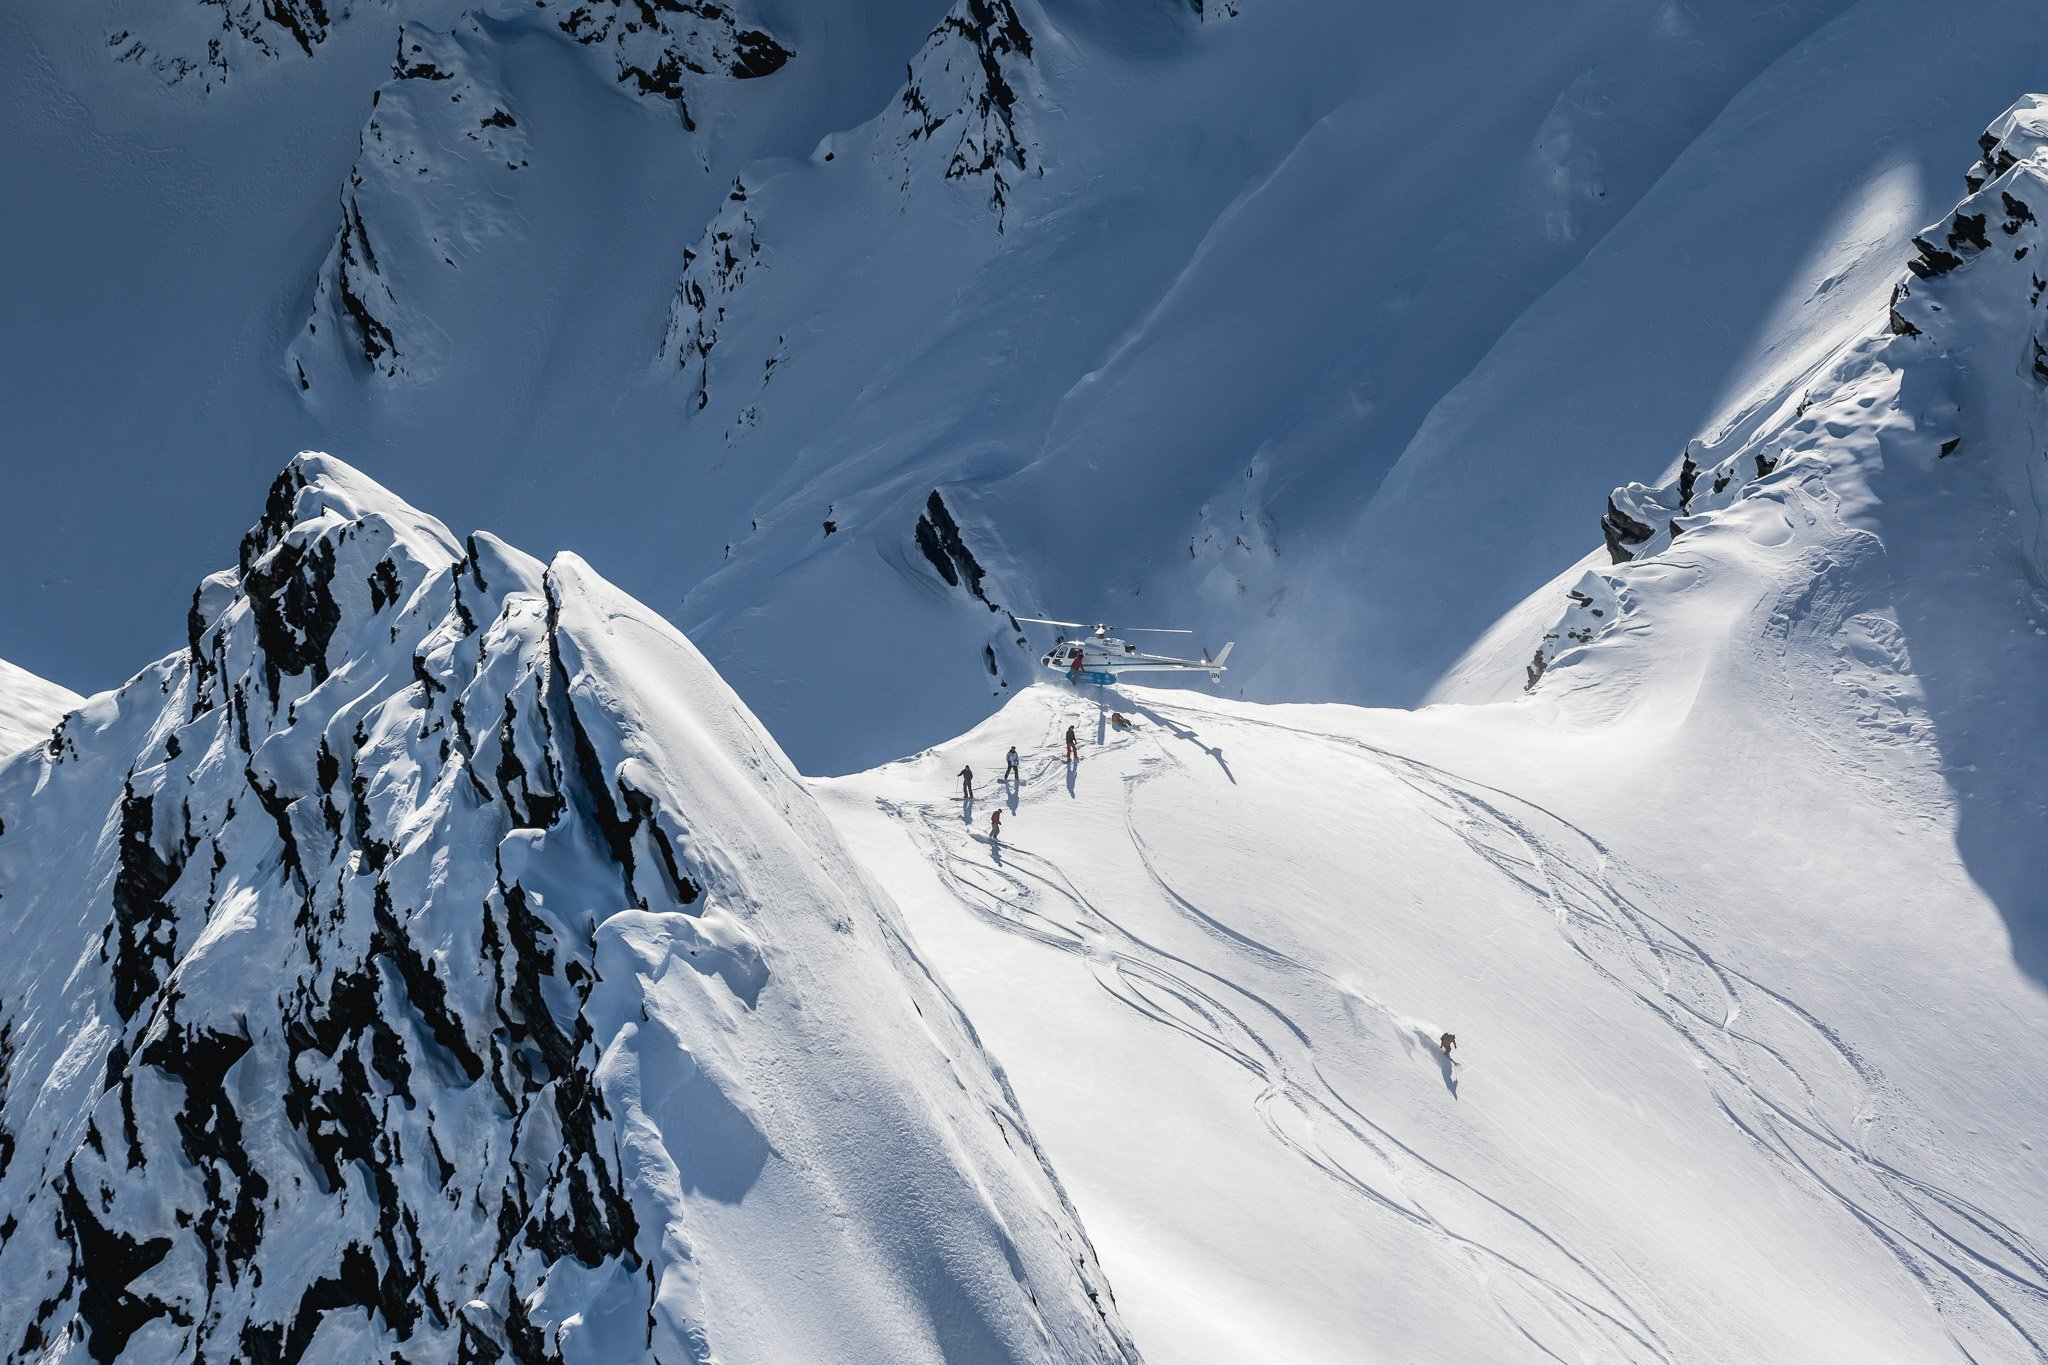 Best Bet July / August: Where To Ski To Get The Most Out Of